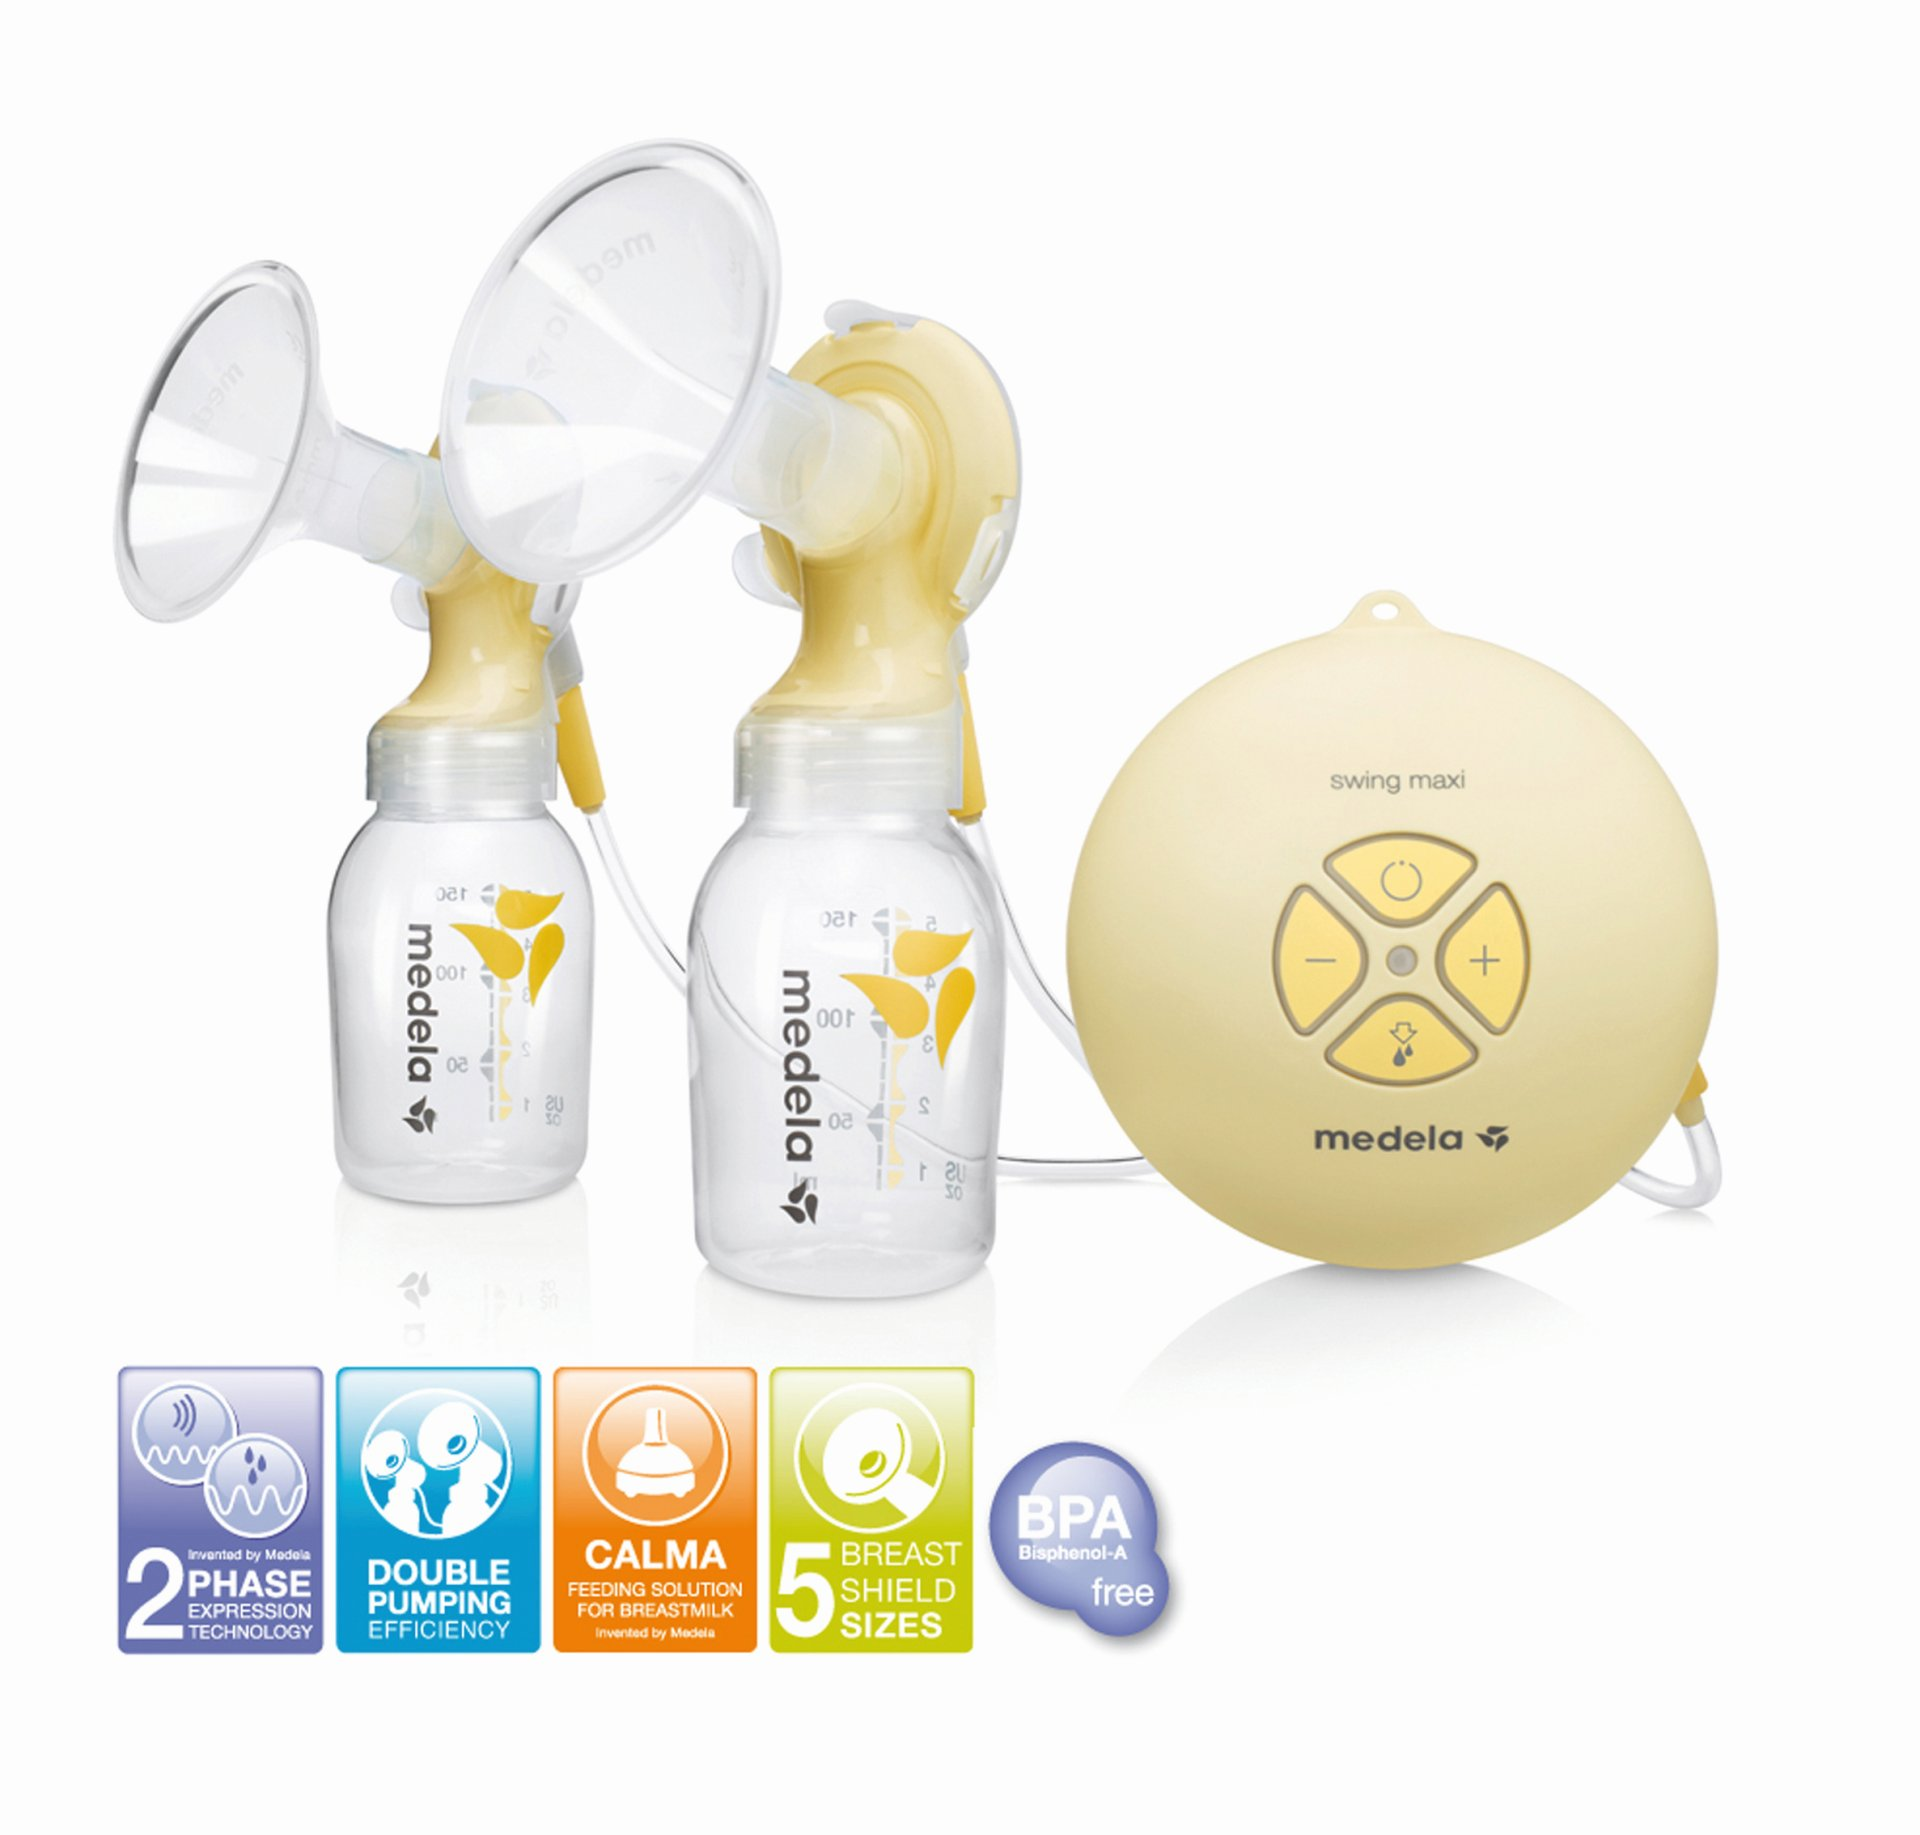 Medela Double Electric Breast Pump Swing Maxi Buy At Kidsroom